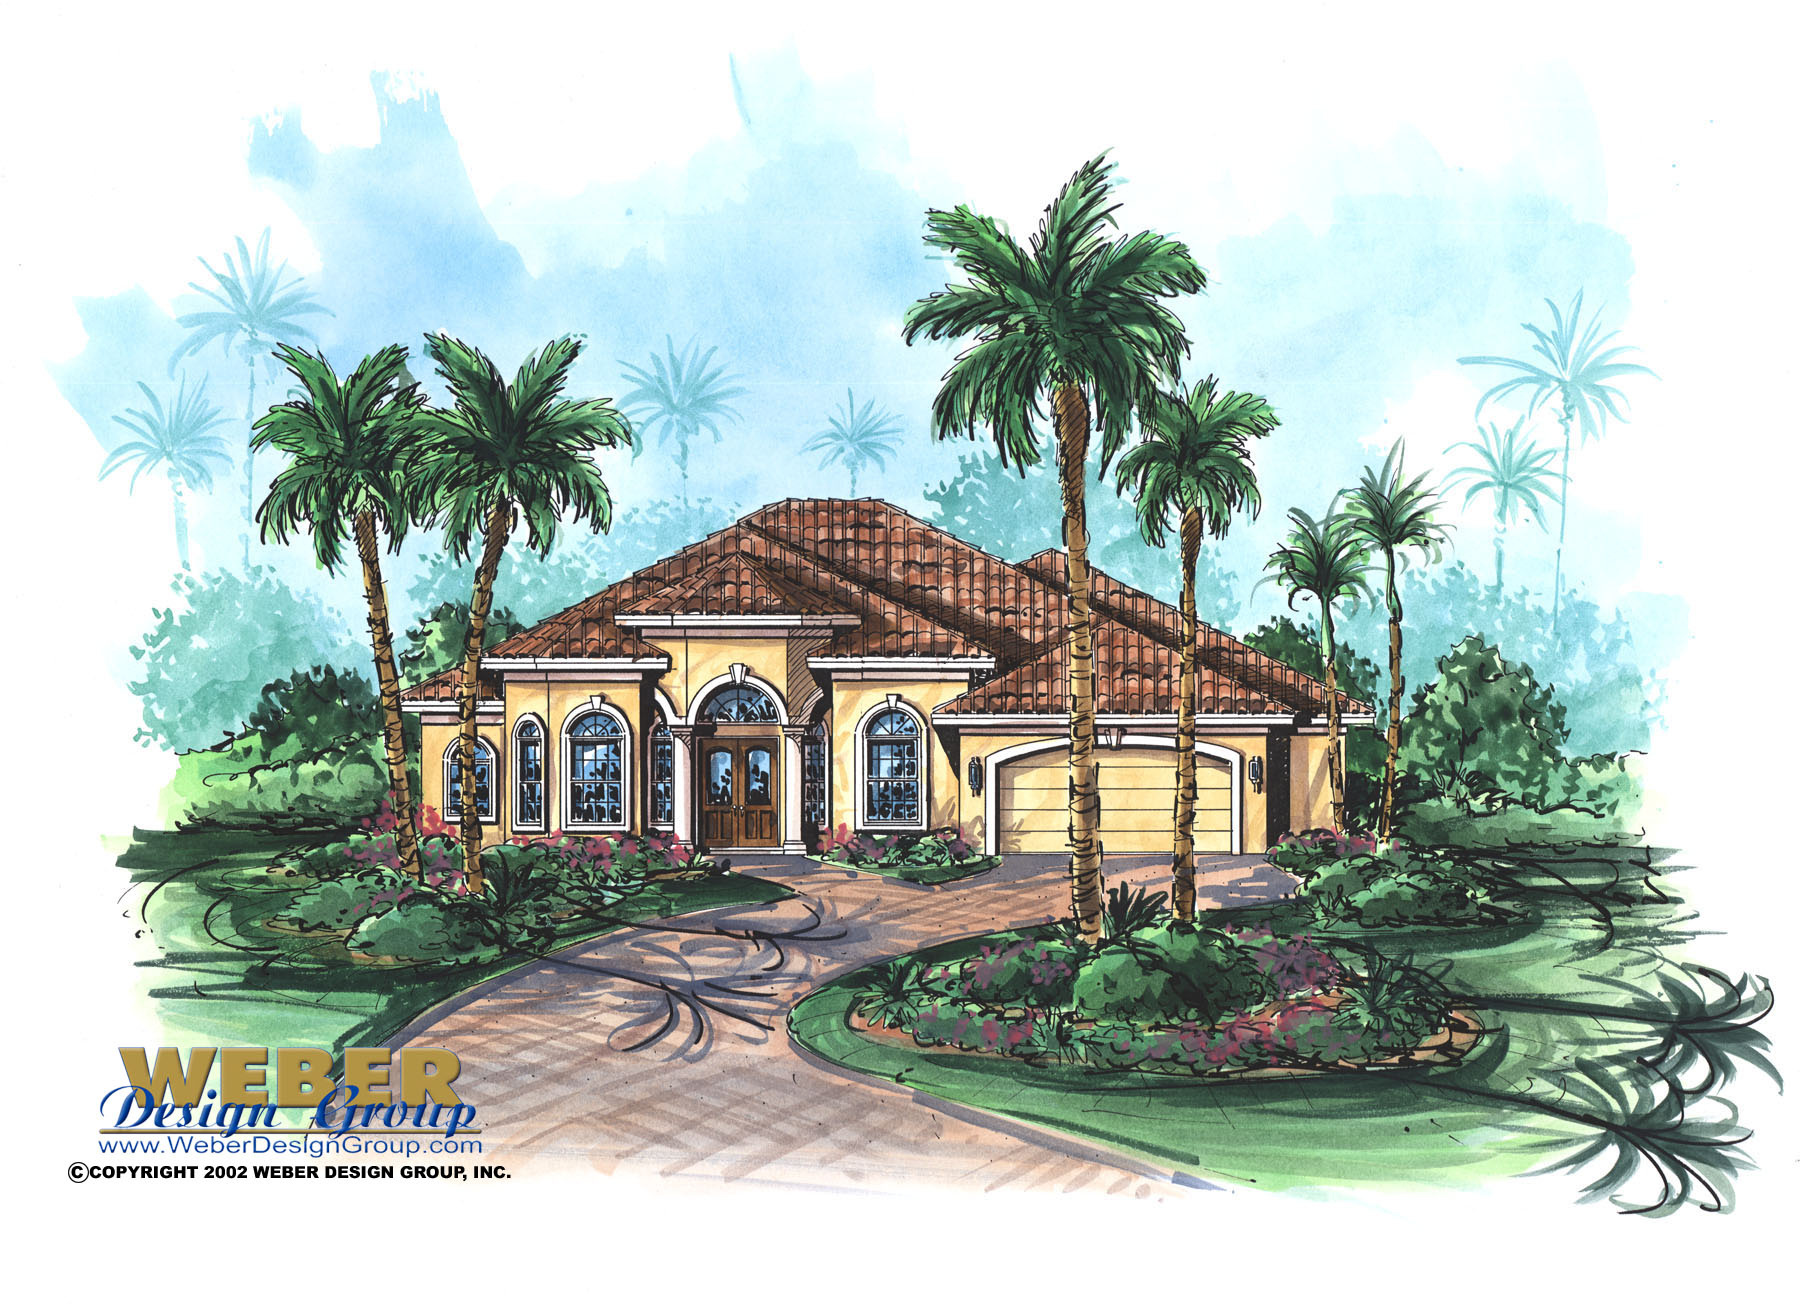 Guana cay house plan weber design group naples fl for Weber house plans